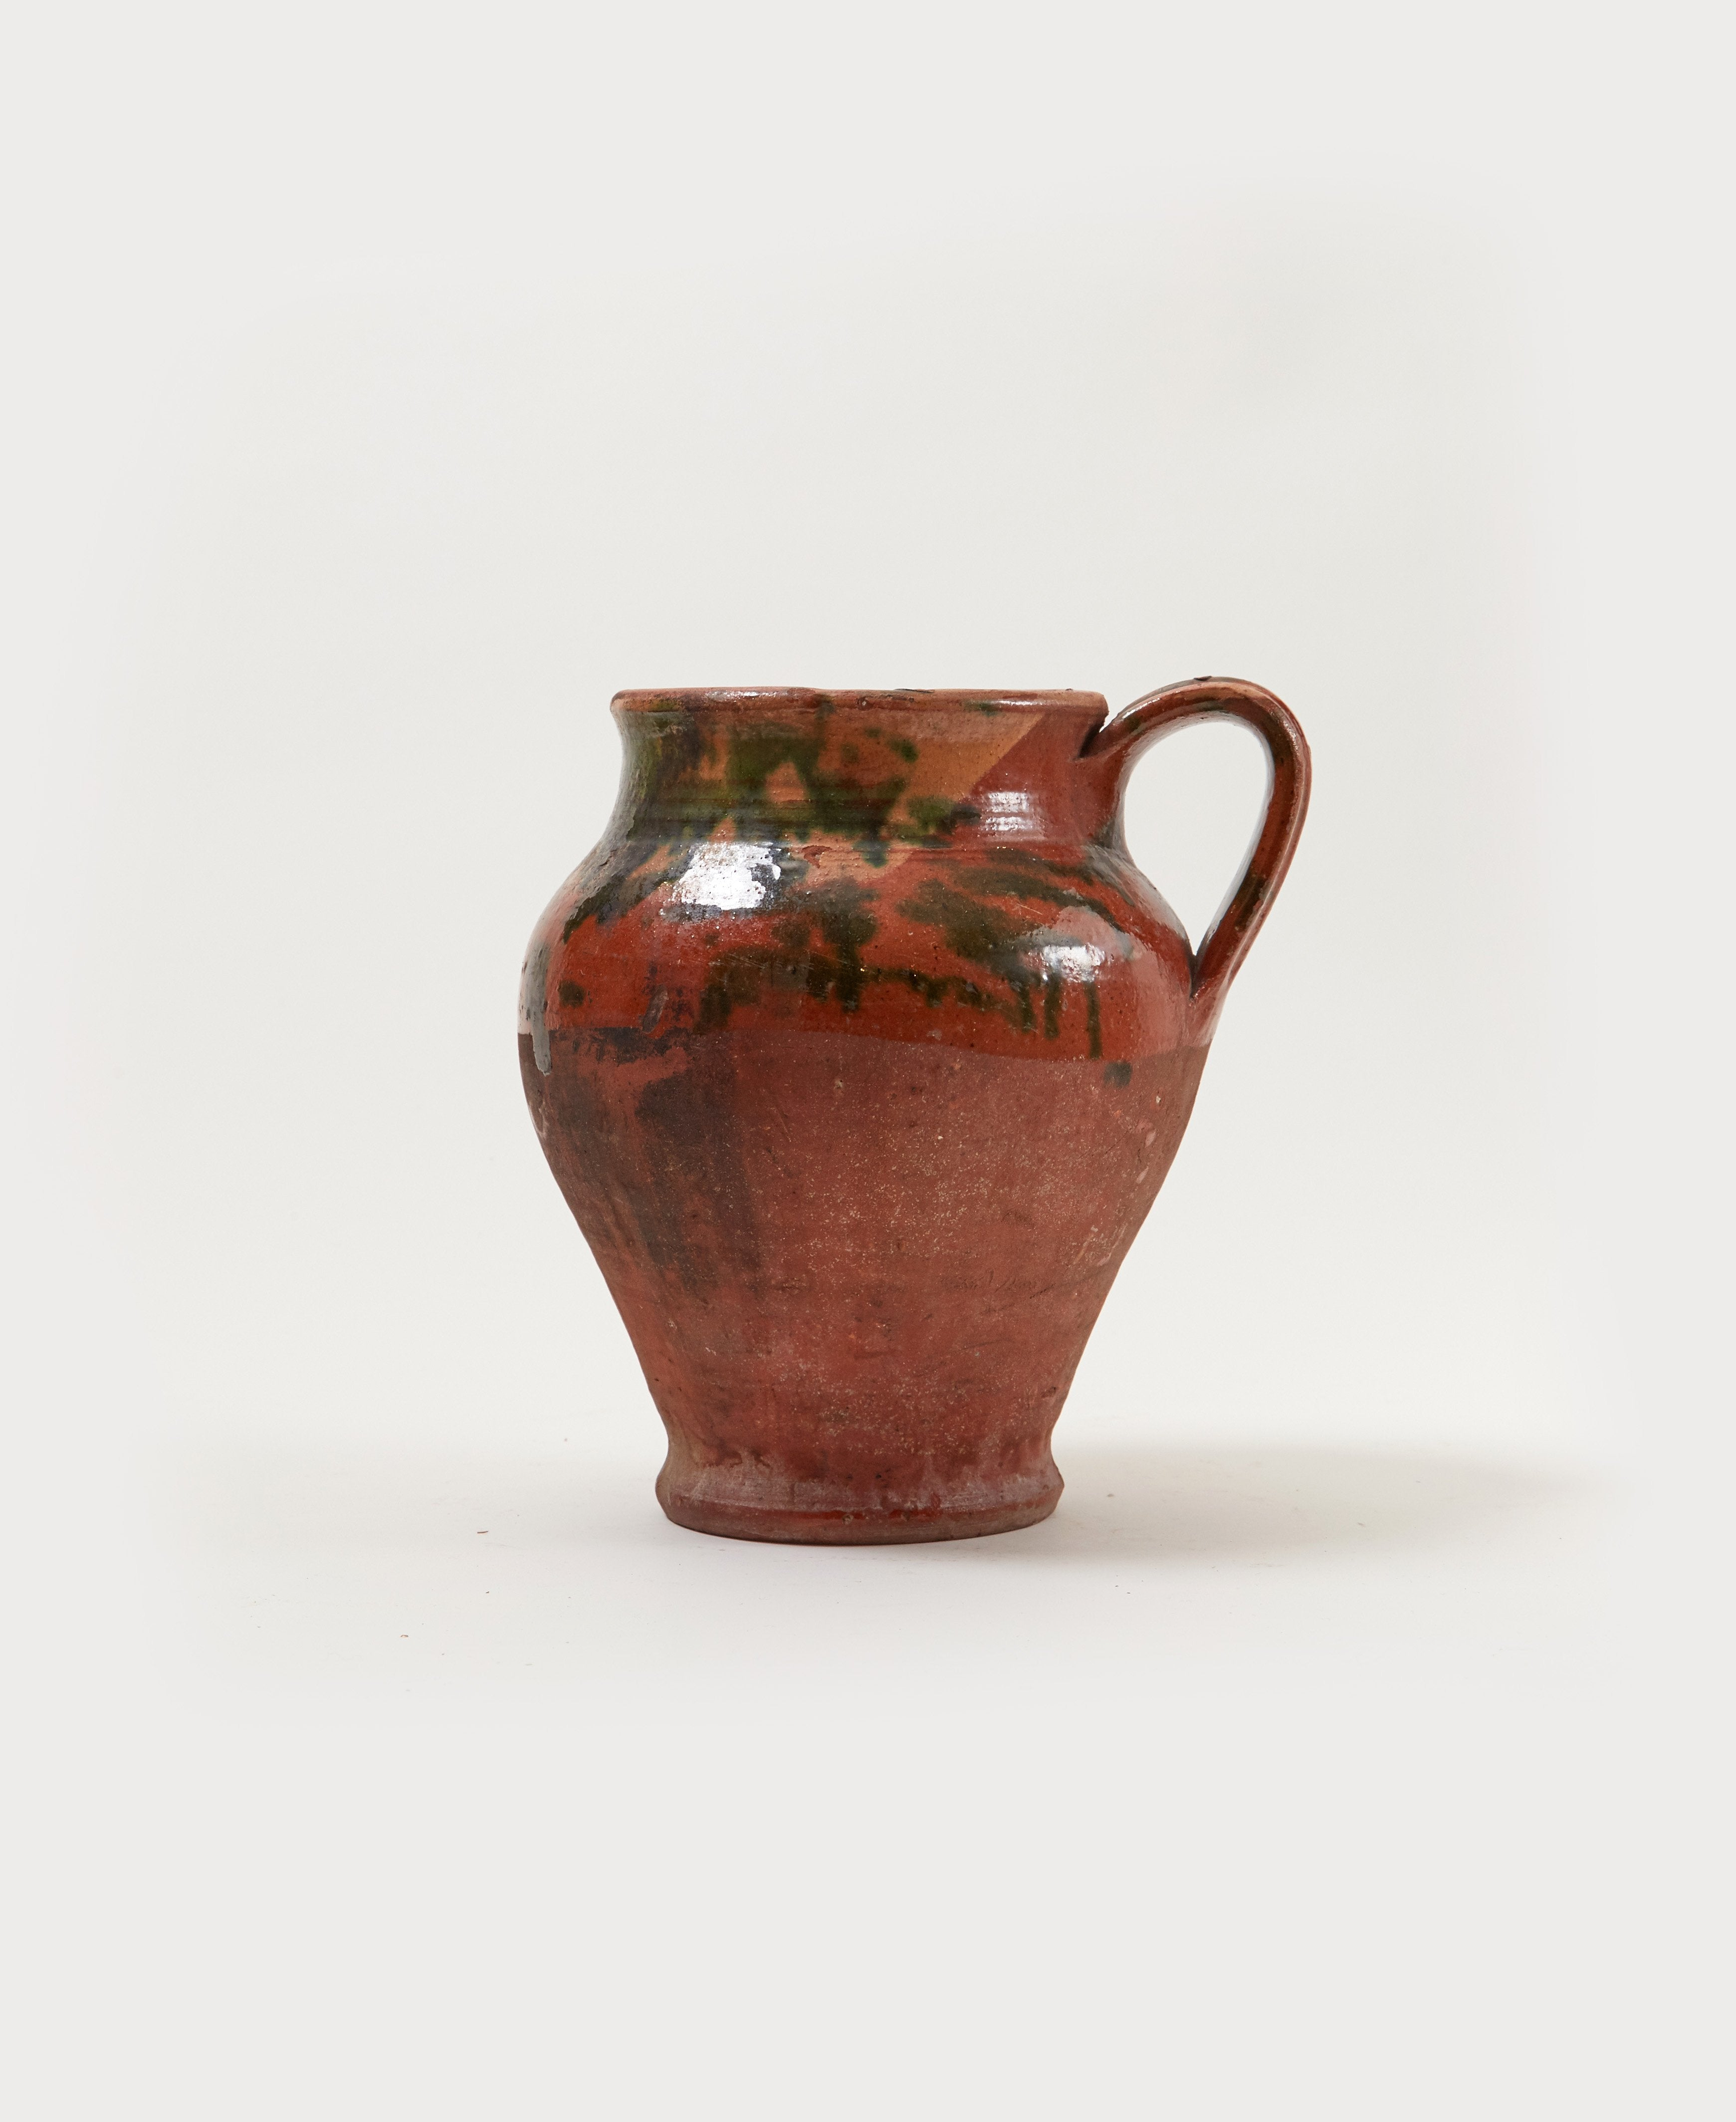 Antique Terra Cotta Pitcher - Il Buco Vita